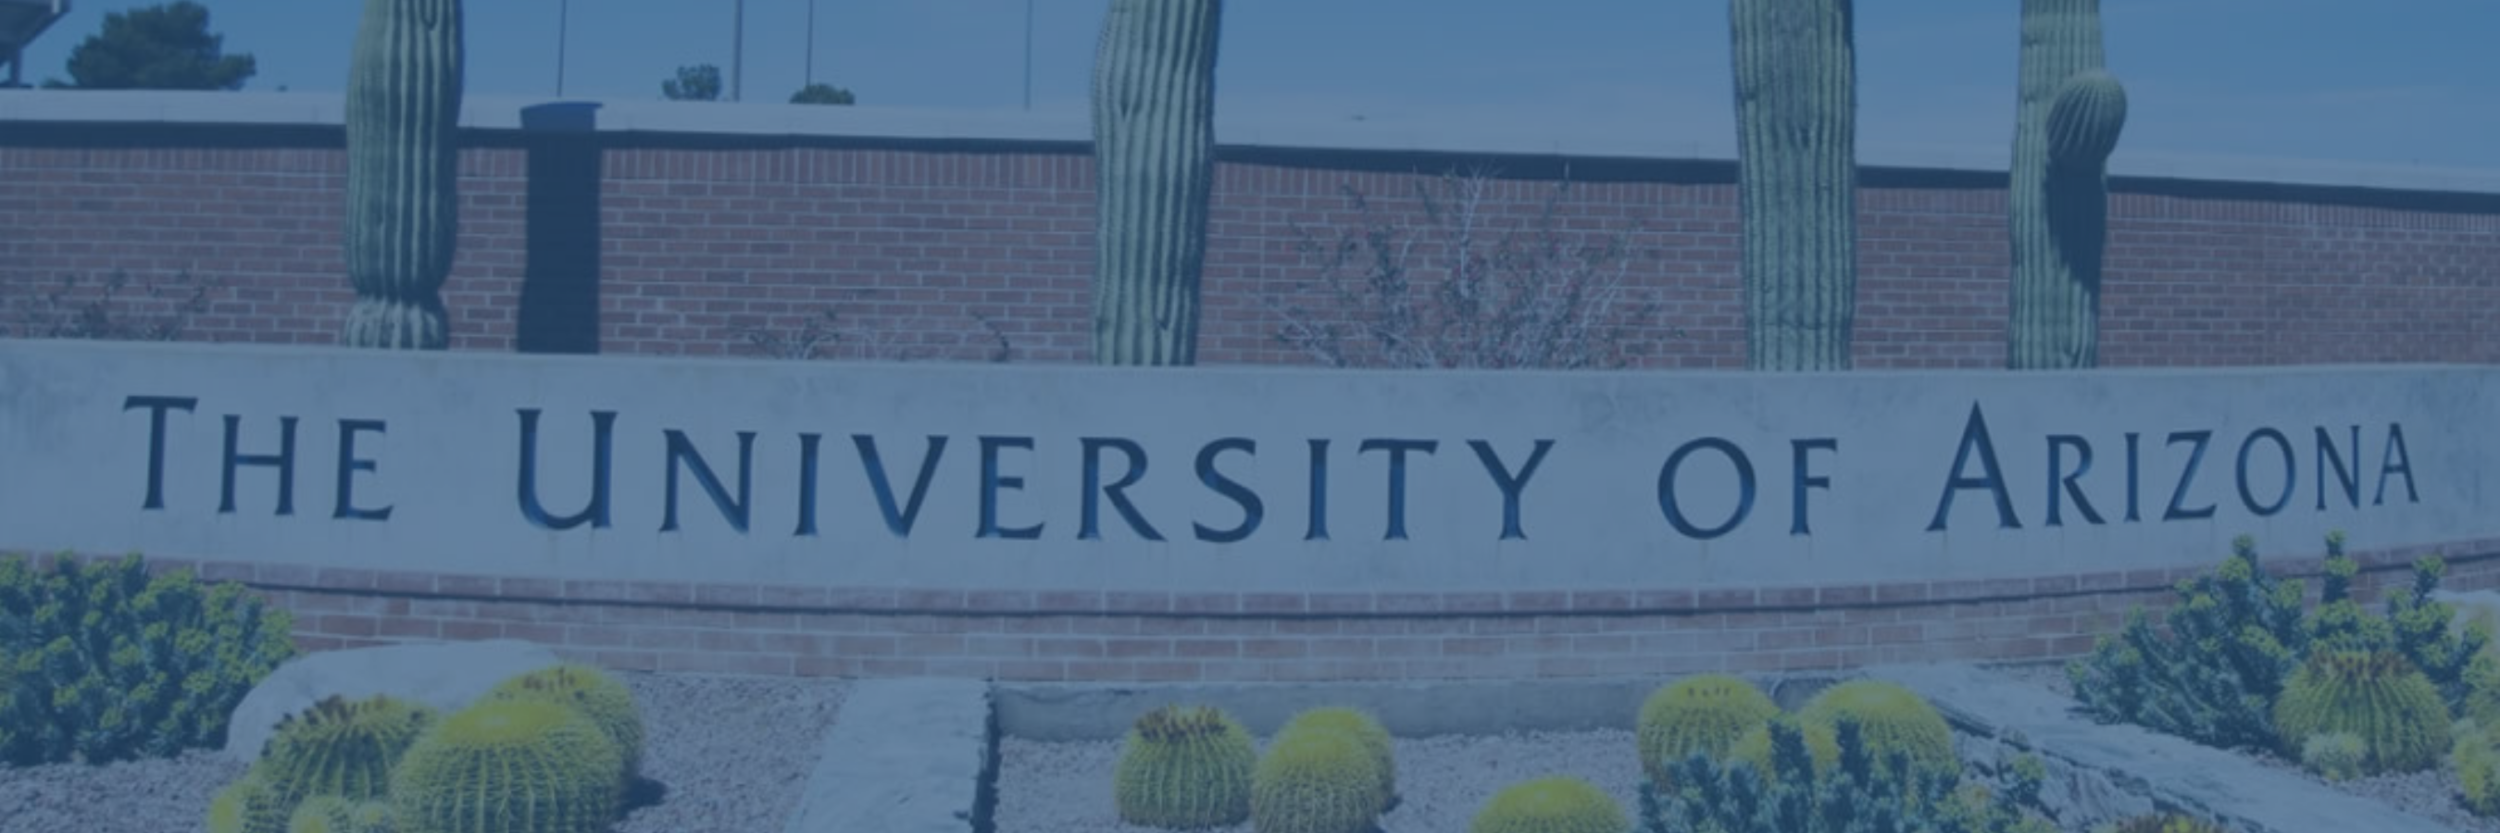 LUNCH & LEARN: MENTORSHIP AT ARIZONA CALS - APRIL 9, 2019